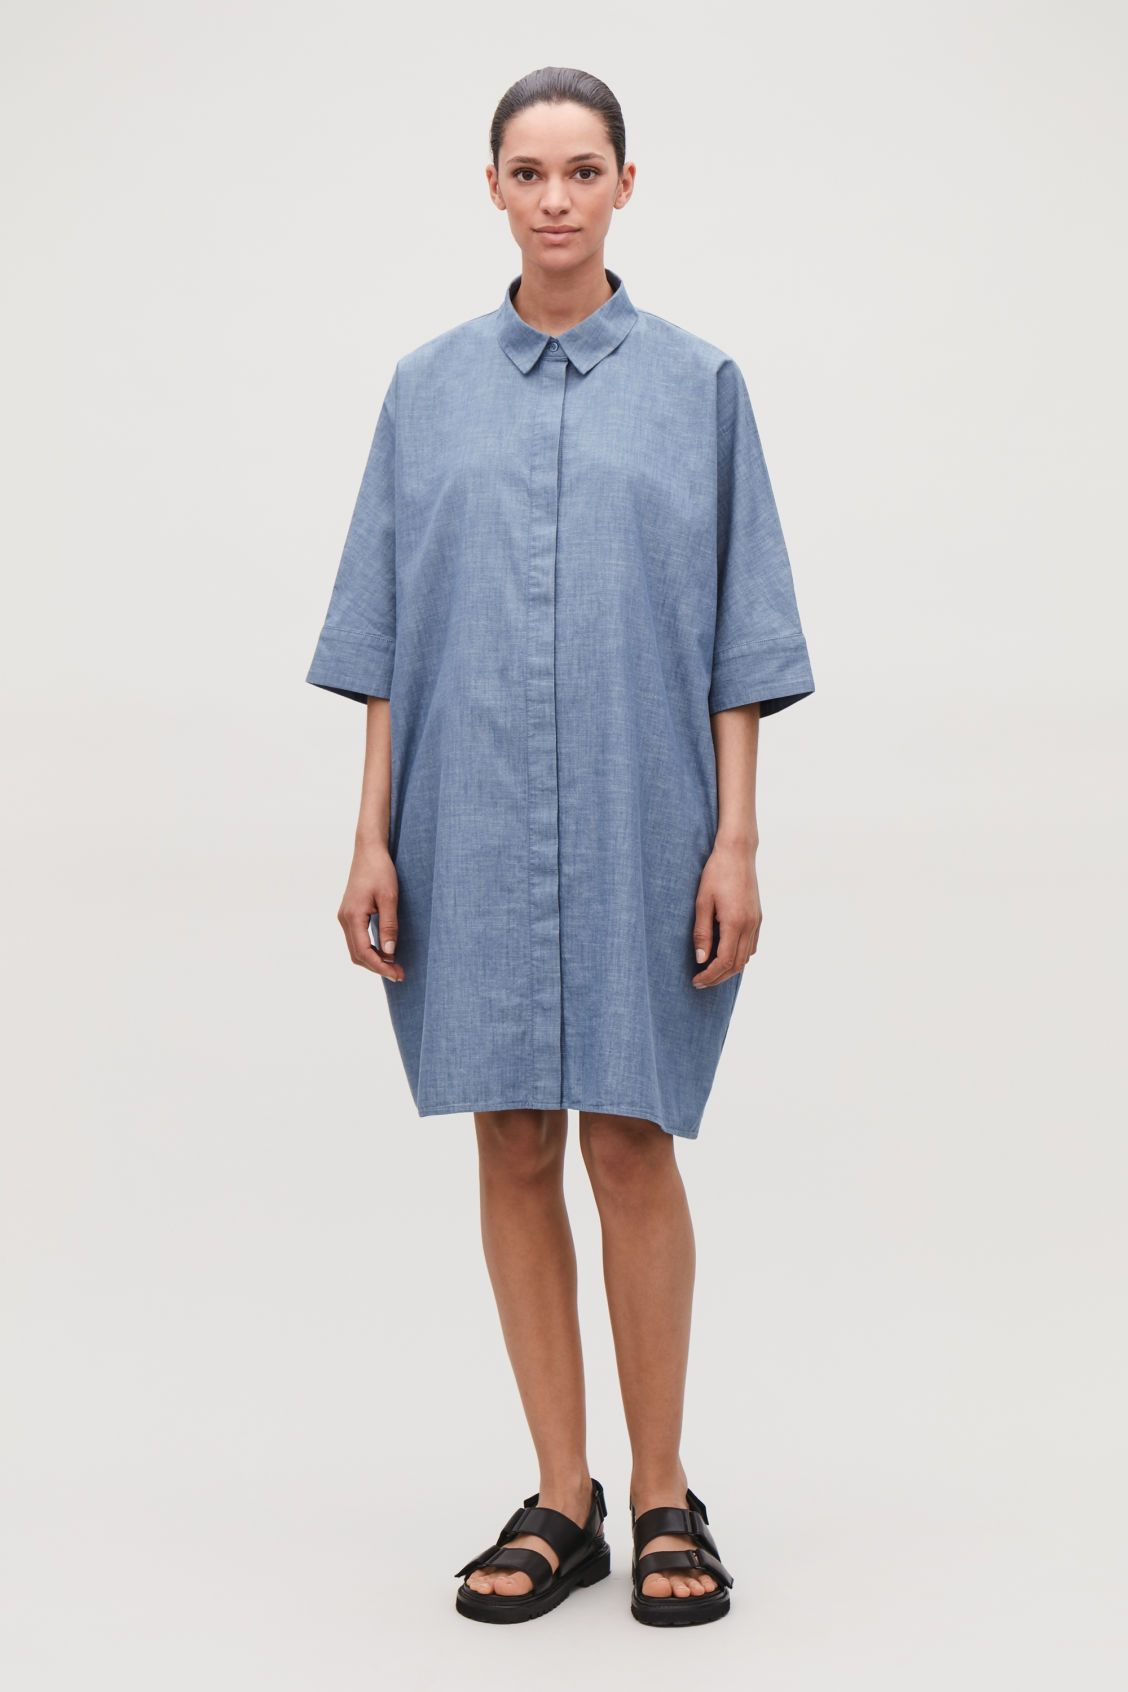 fe320a6ac385 BOXY DENIM SHIRT DRESS - Chambray blue - Dresses - COS | Apparel in ...